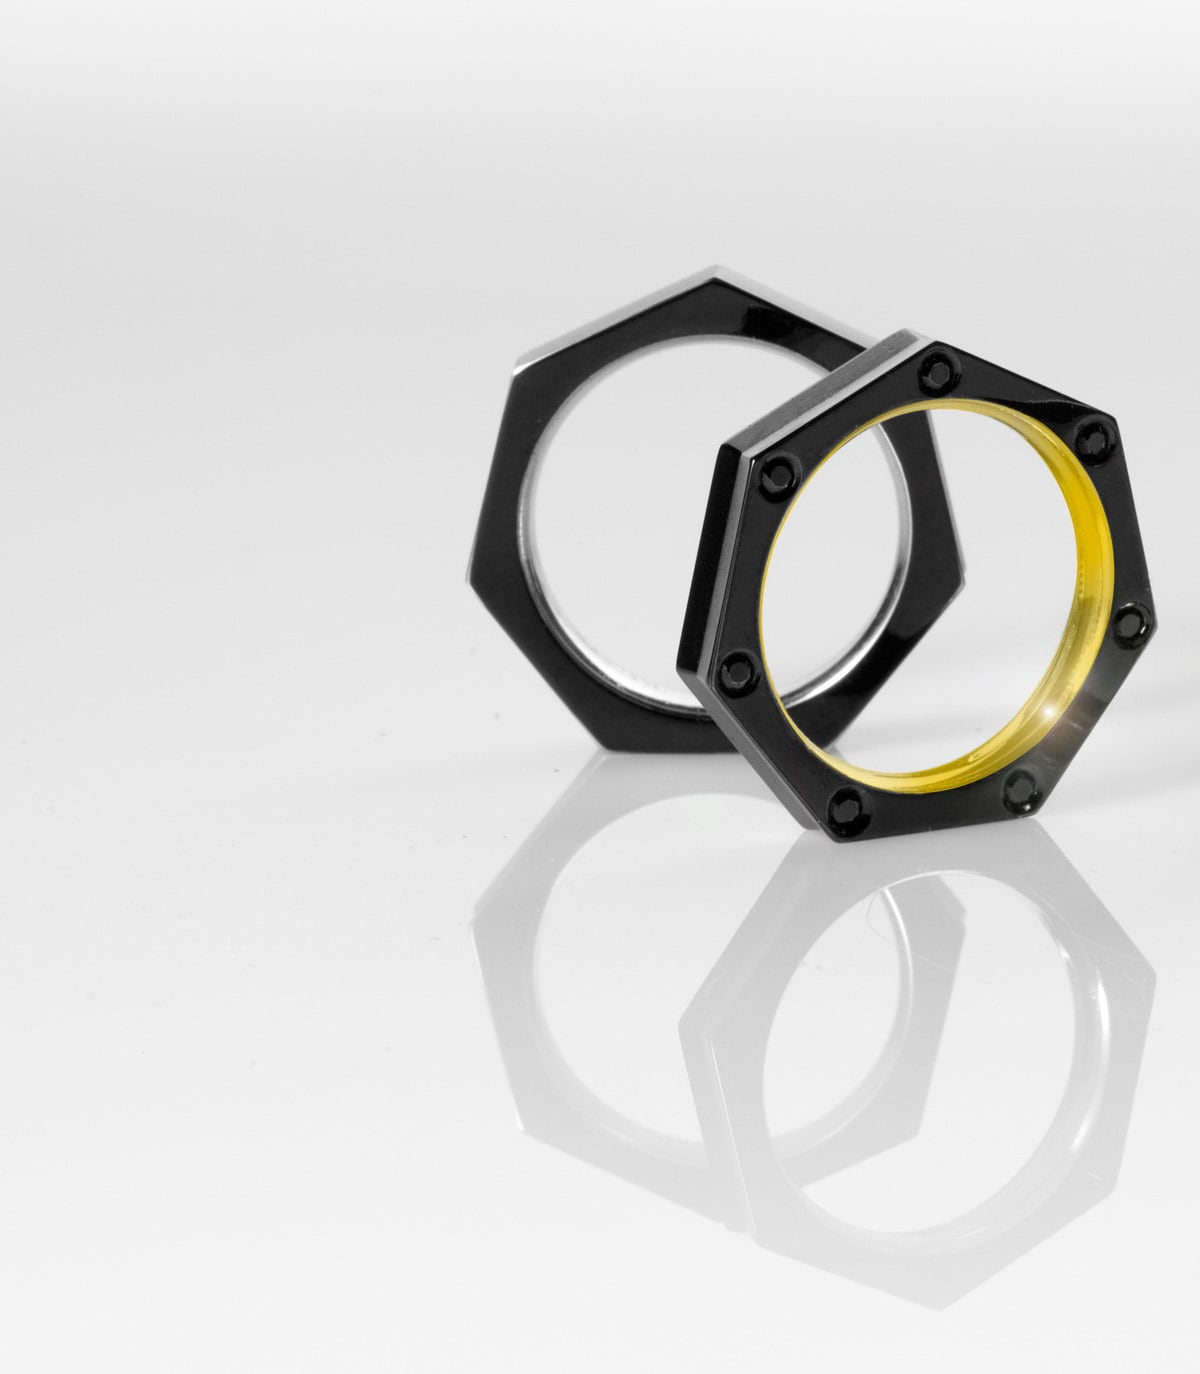 The Heptagon Ring for Men in solid Gold or Platinum with Black DLC Coating